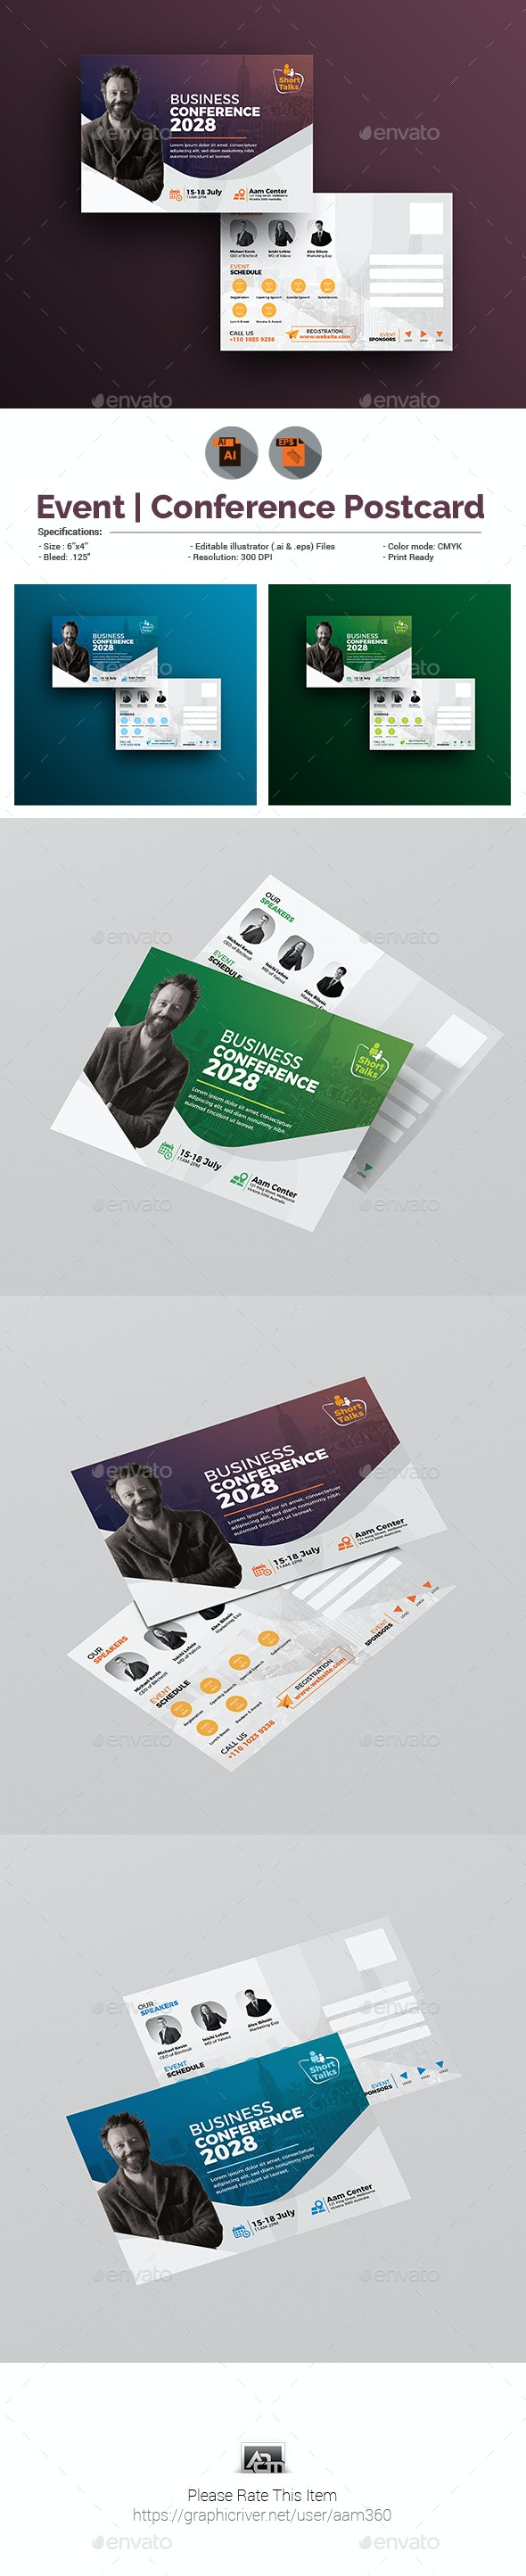 Conference/ Event Postcard Template - Cards & Invites Print Templates